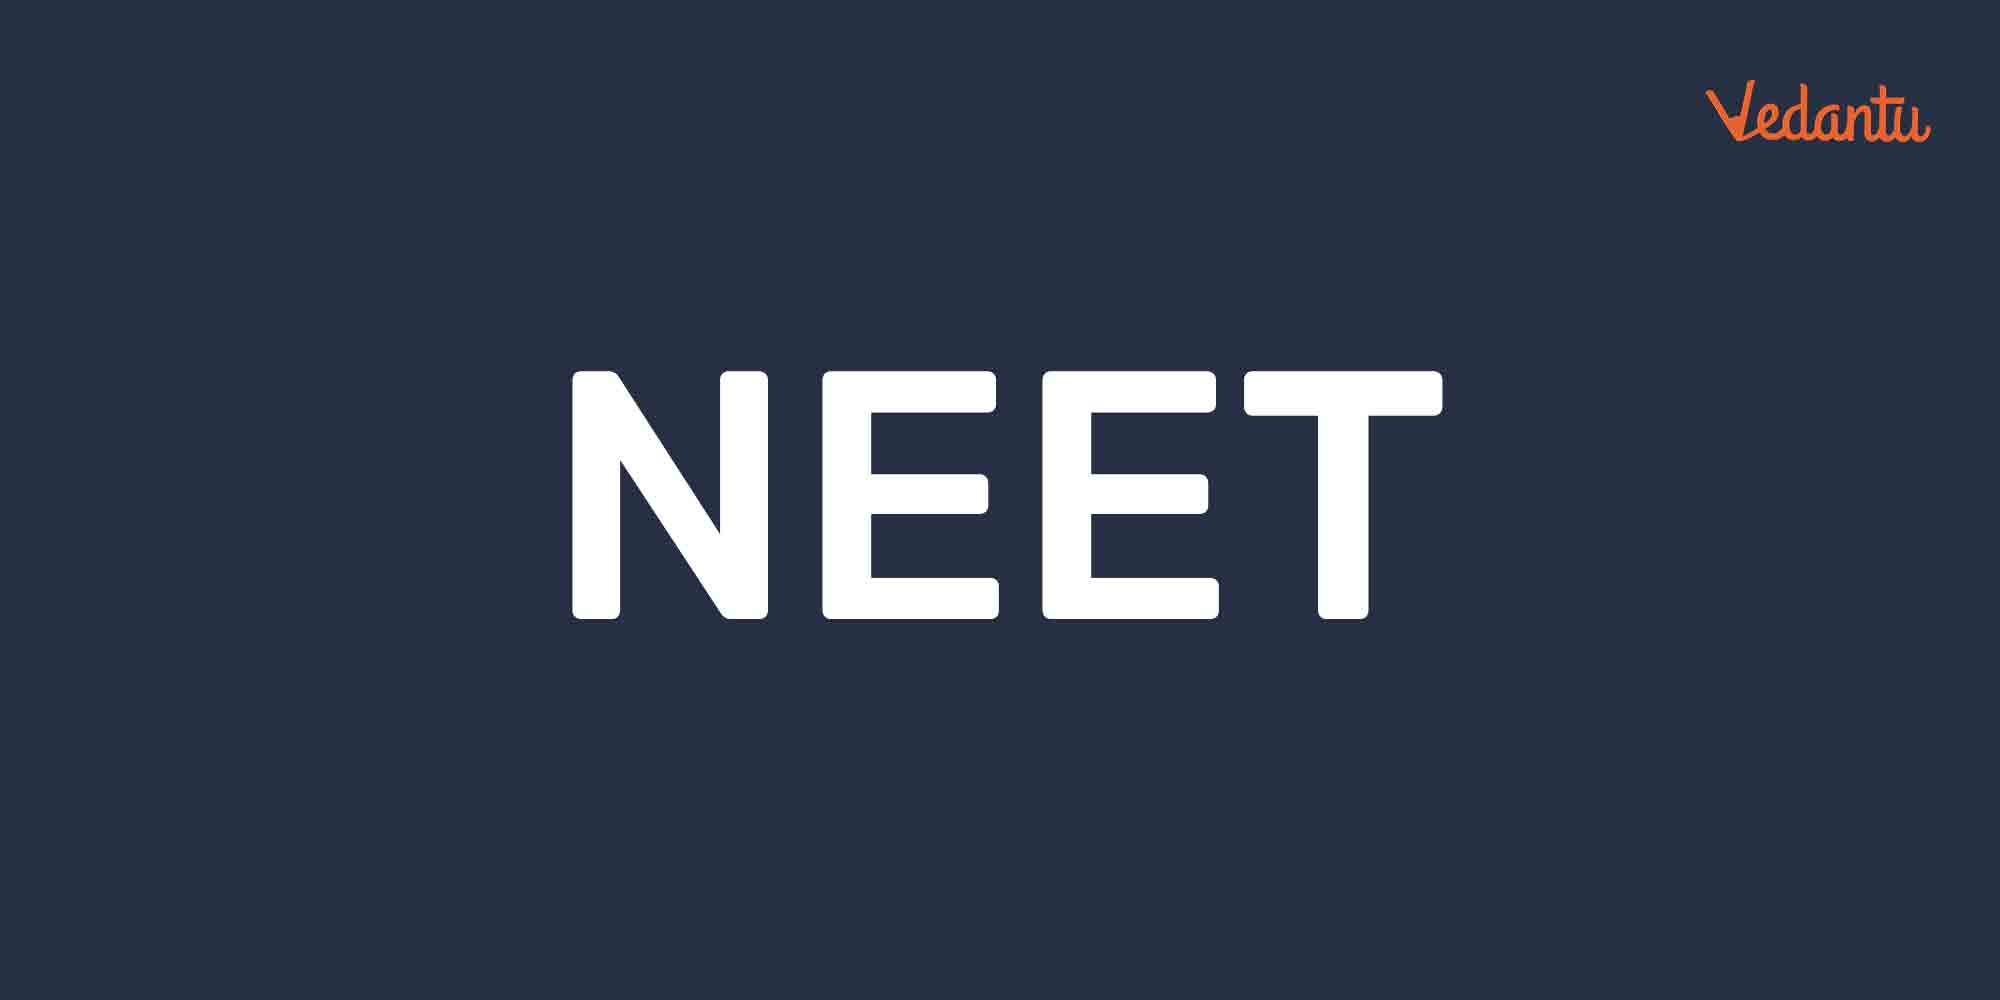 How to Prepare For NEET in the Last Month?